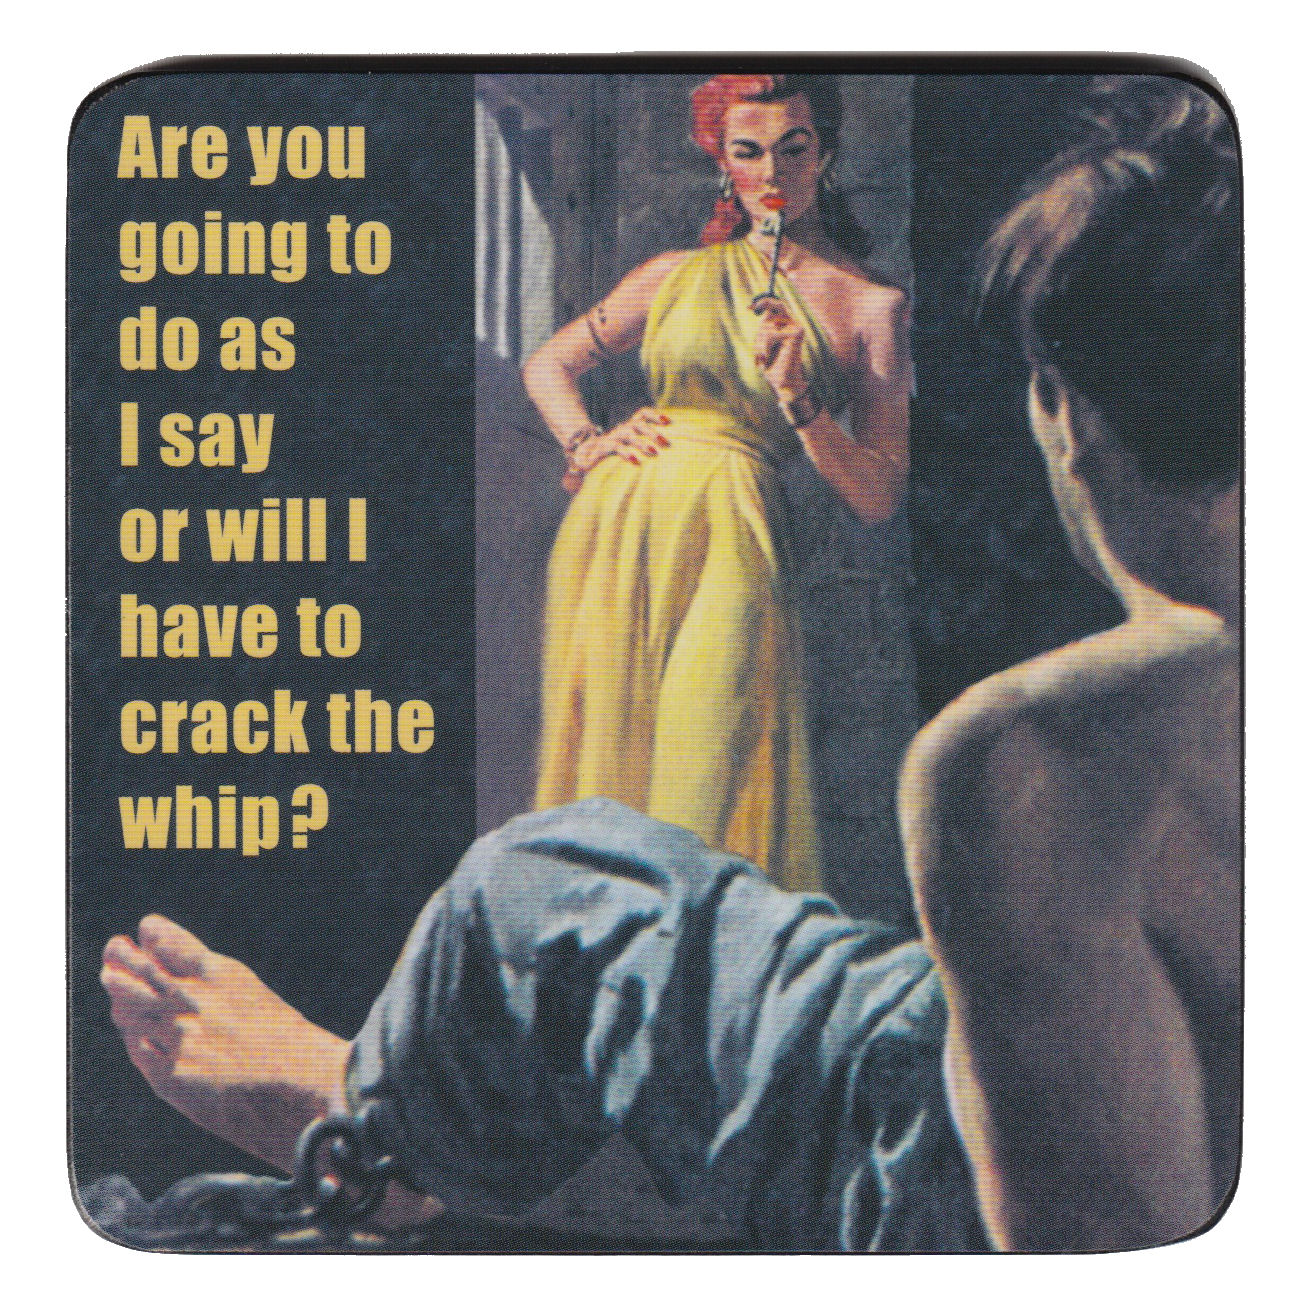 Are You Going To Do As I Say Or Will I Have To Crack The Whip? Single Coaster.